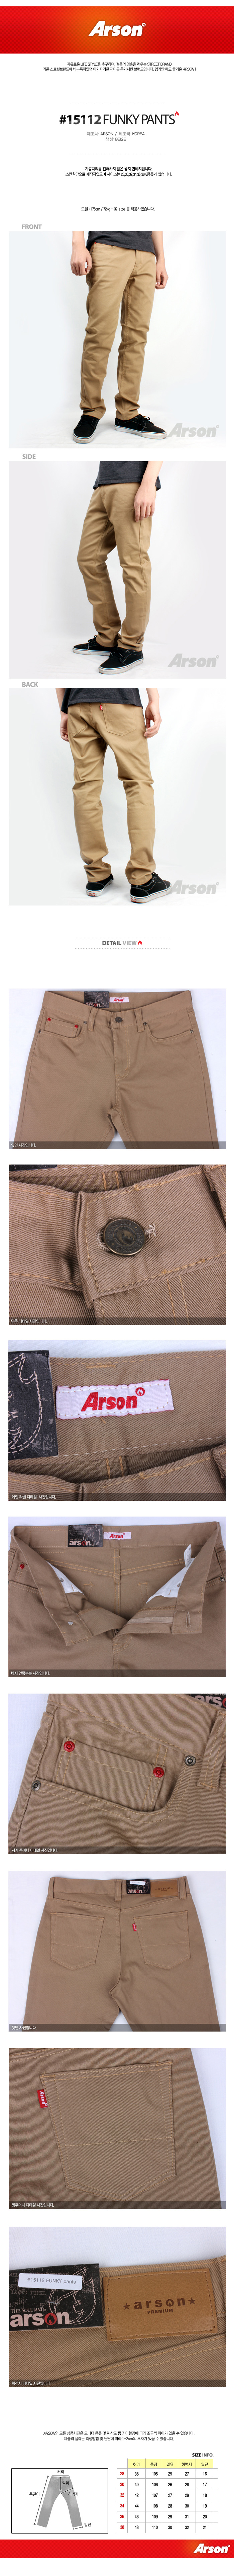 [ ARSON ] [Arson] ARSON GENUINE/15112 FUNKY PANTS (BEIGE)/men\'s cotton pants/cotton pants/ARSON cotton pants/pants